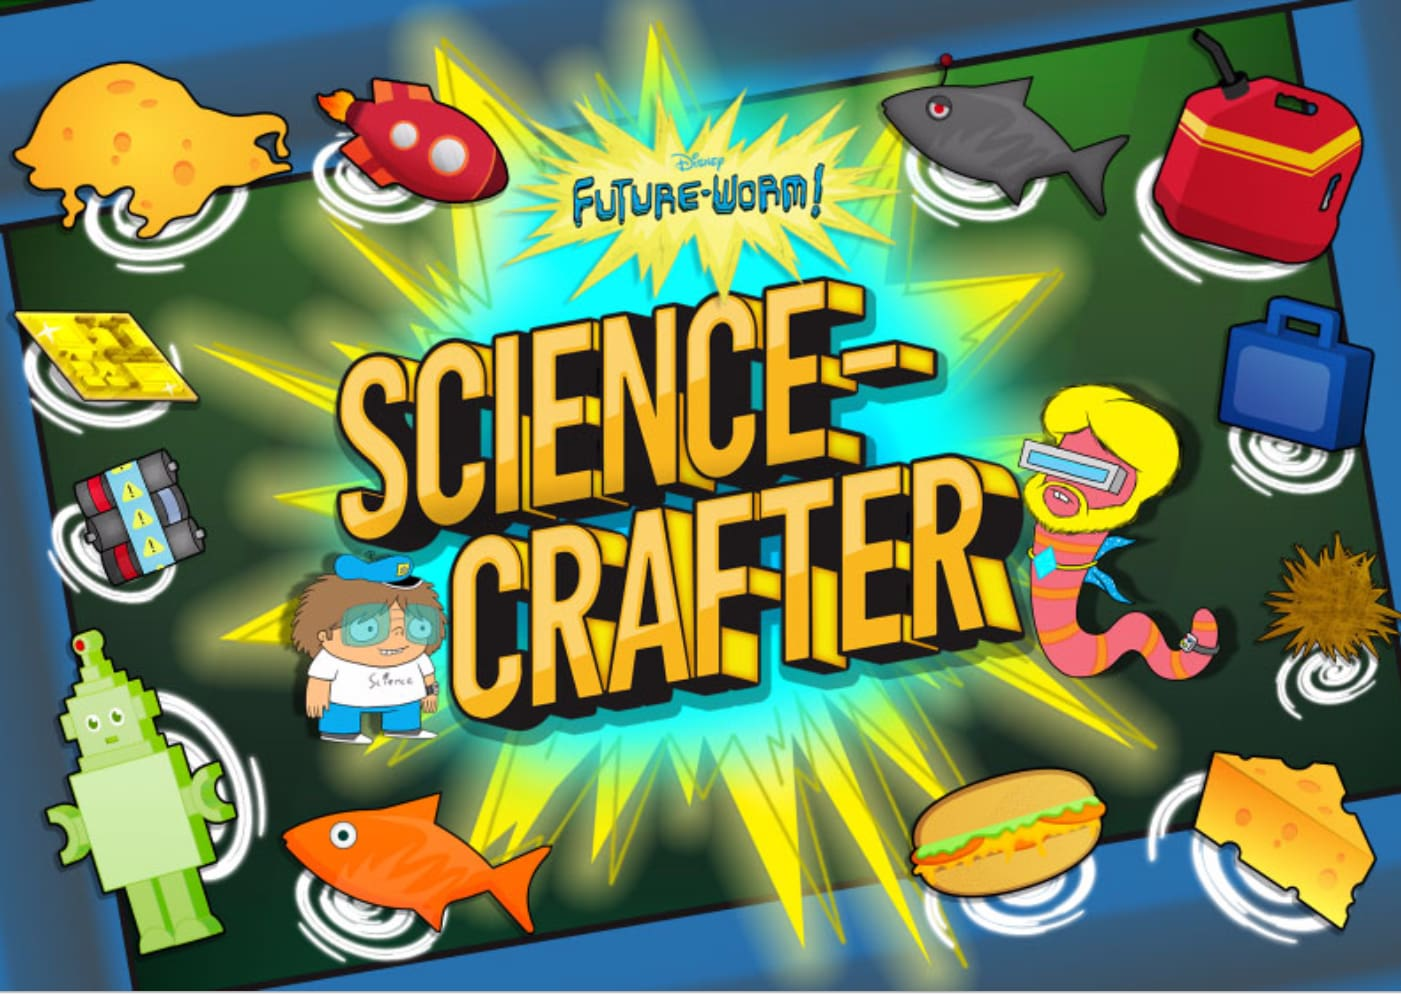 Future-Worm! Science Crafter